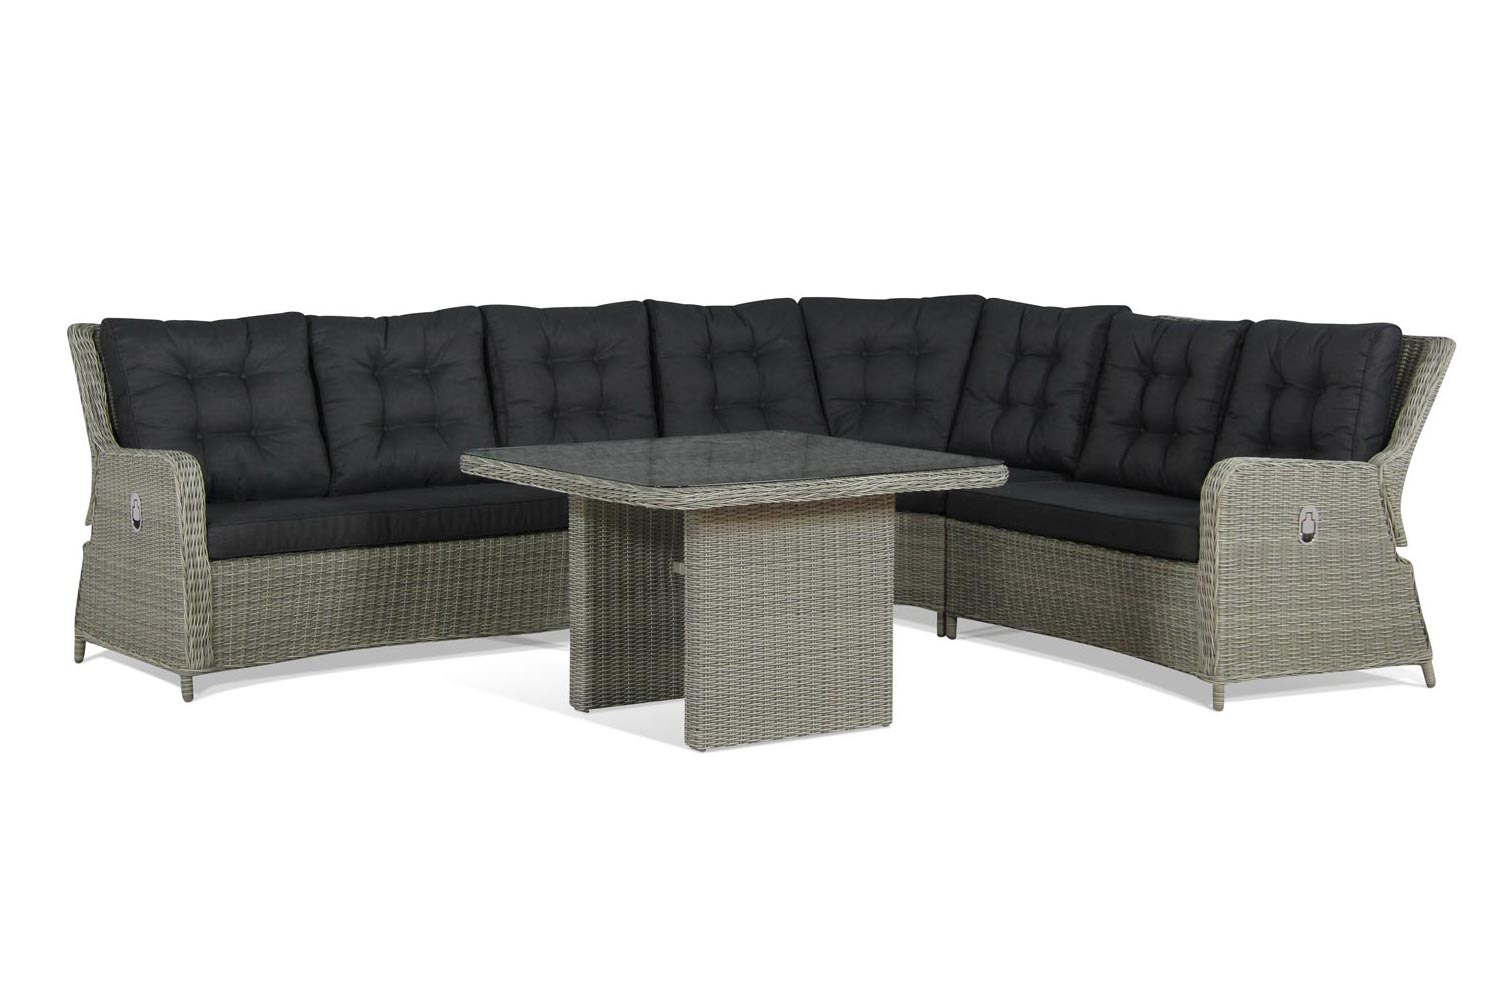 Garden Collections Wilson dining loungeset 5-delig